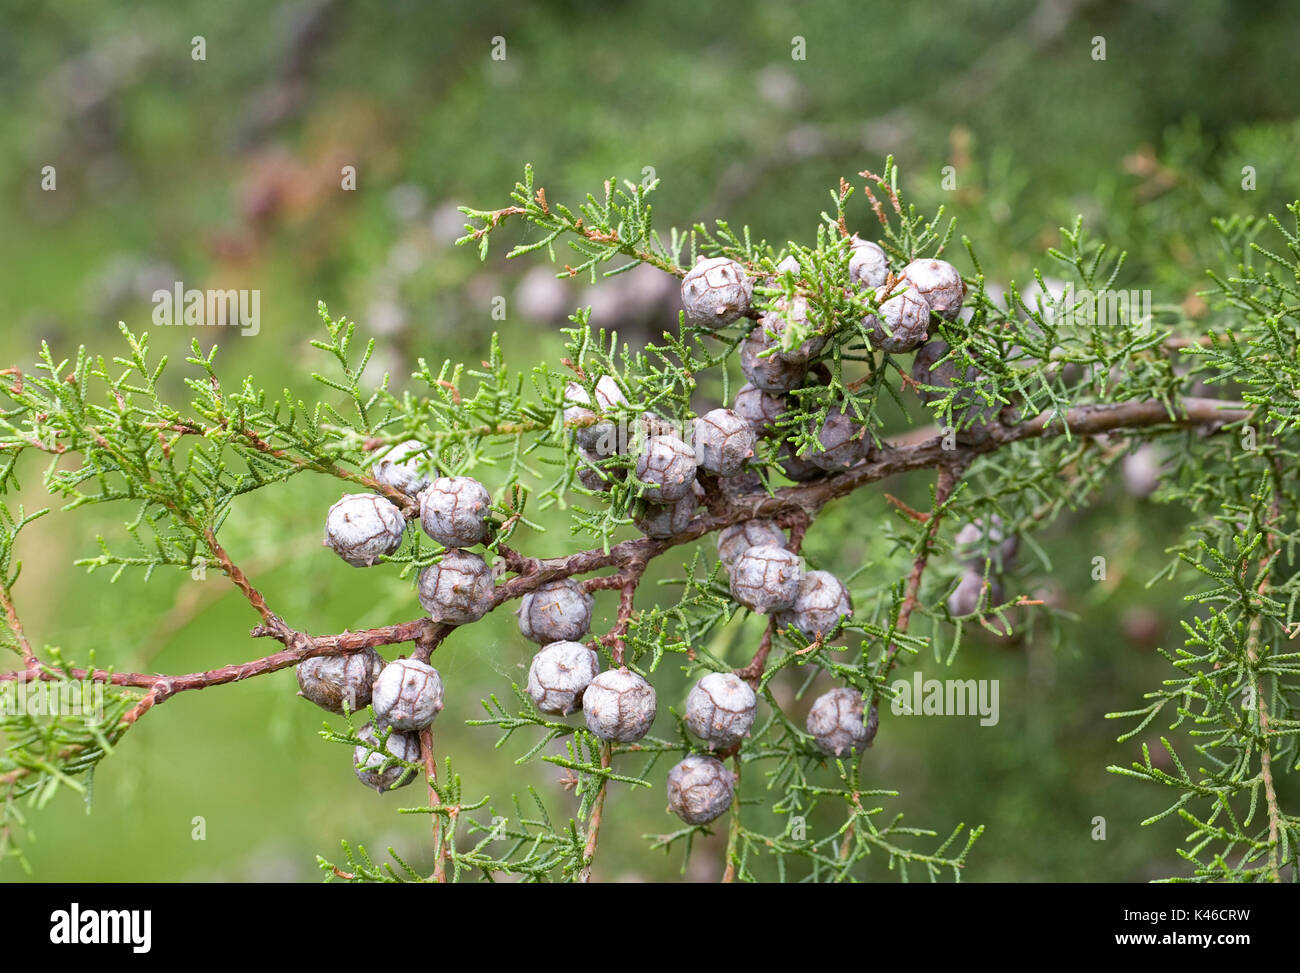 Seed cones on Cupressus guadalupensis var forbesii. - Stock Image